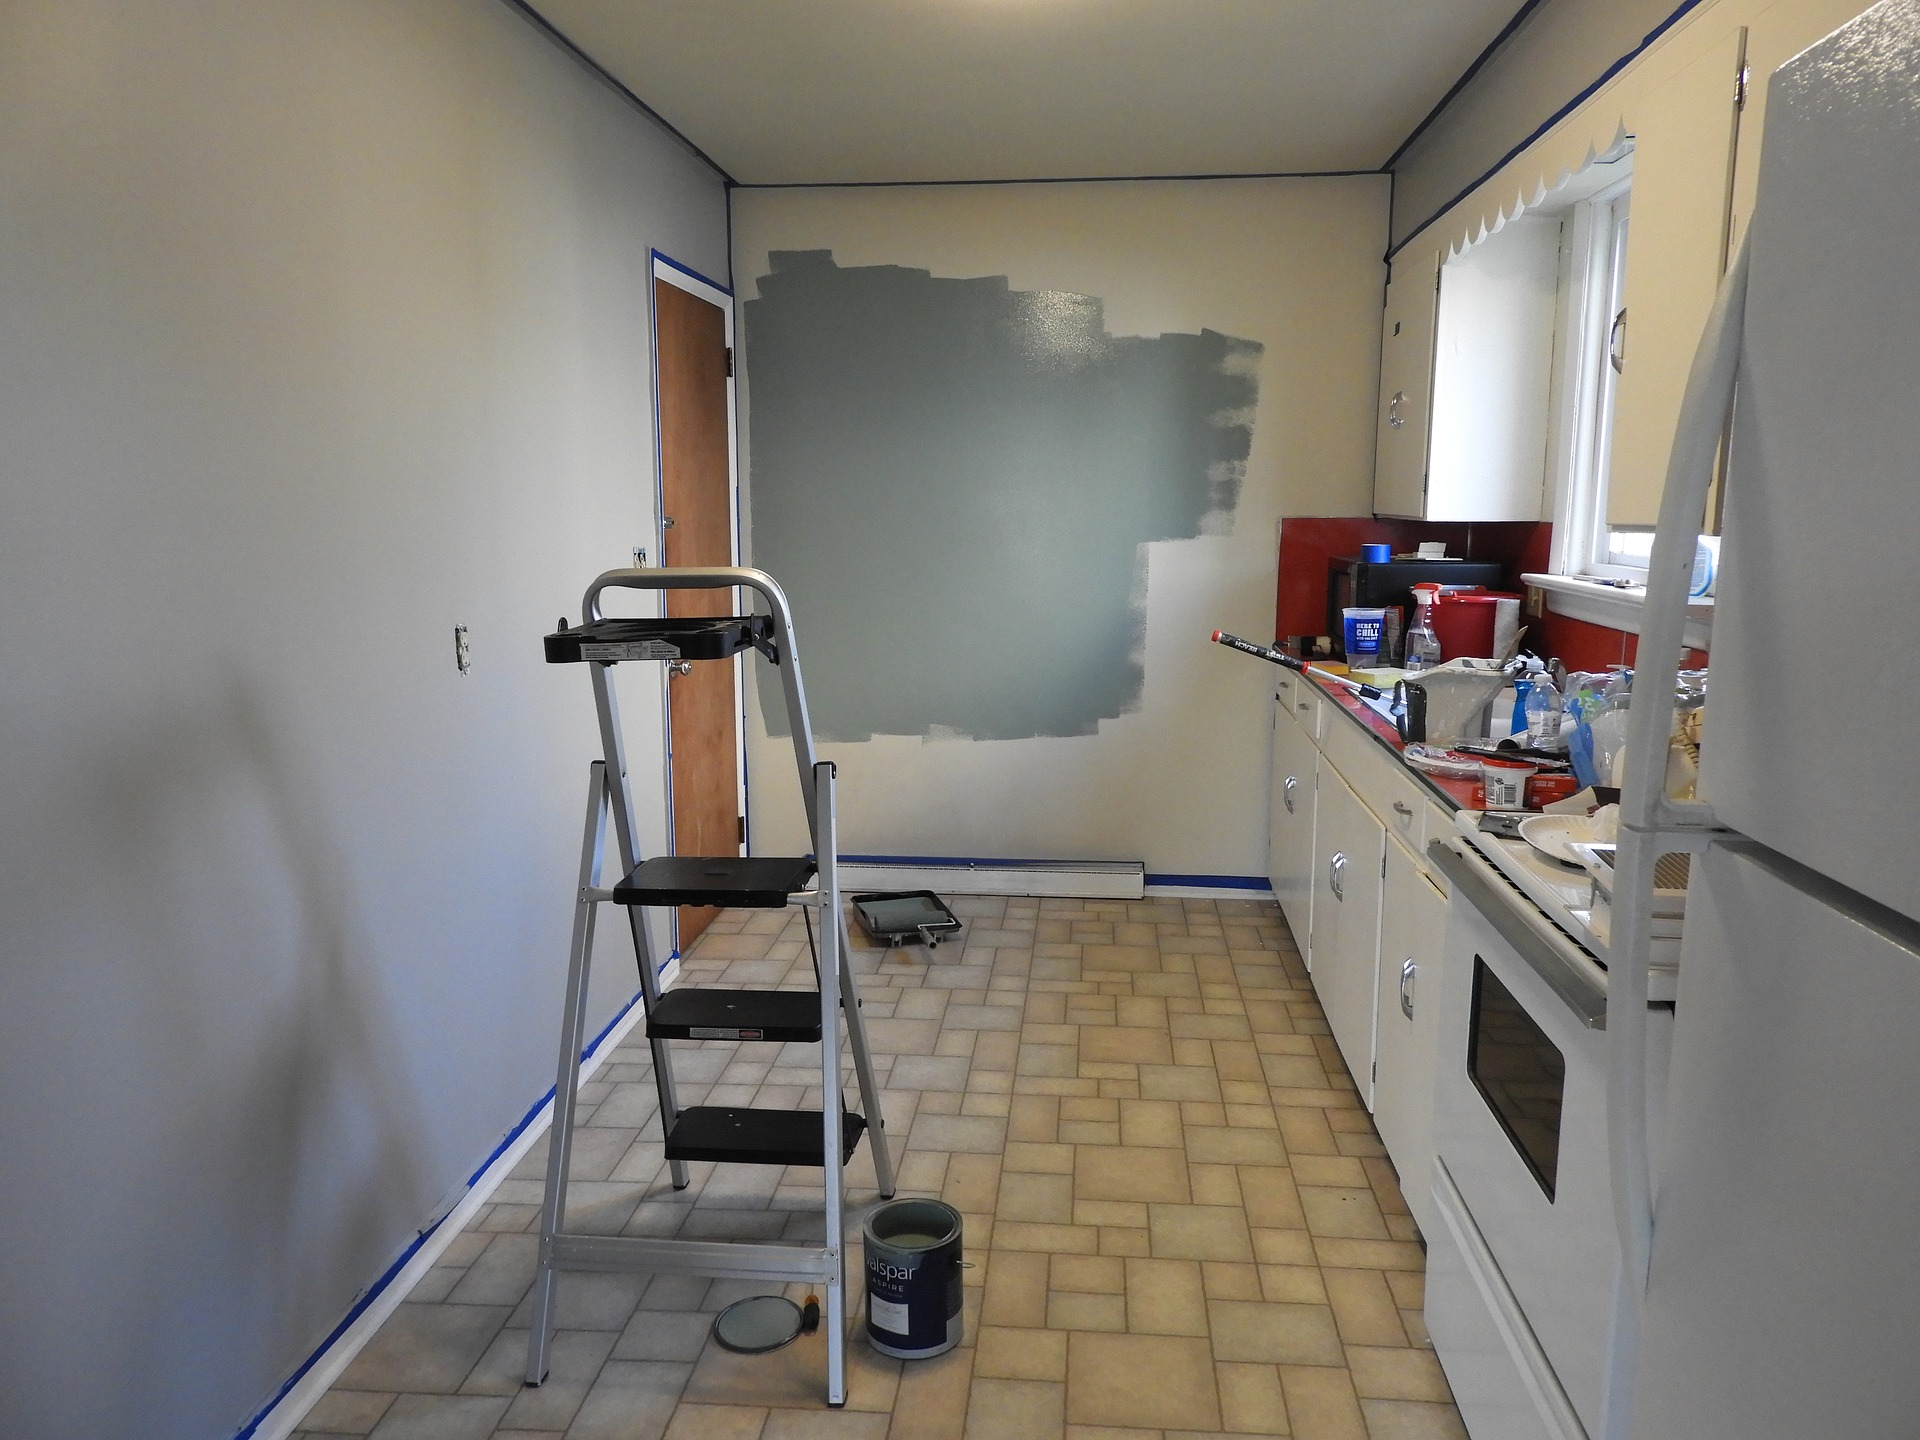 Plan Review Permits - Do i need a building permit to remodel my bathroom